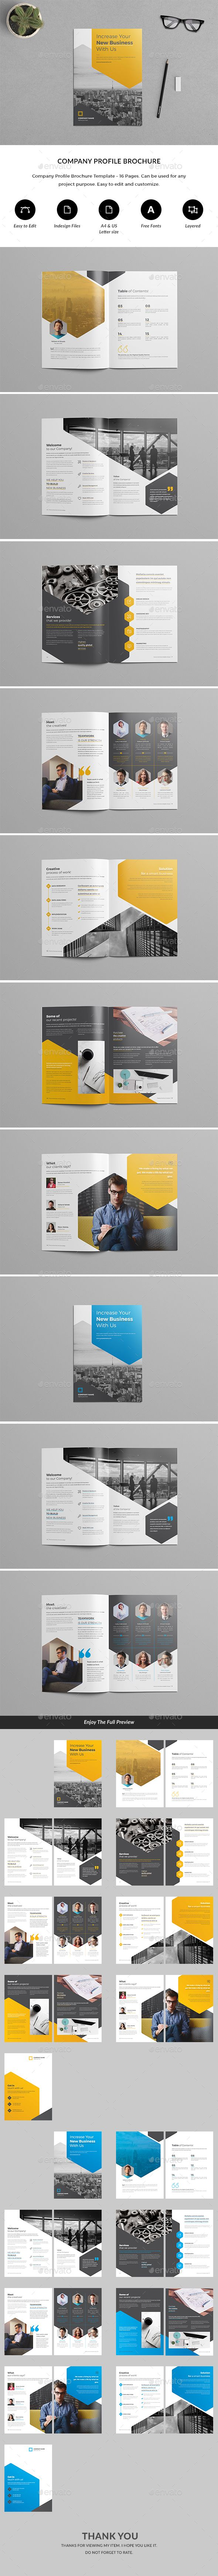 Company Profile — InDesign INDD #company profile #project • Available here ➝ https://graphicriver.net/item/company-profile/21104580?ref=pxcr